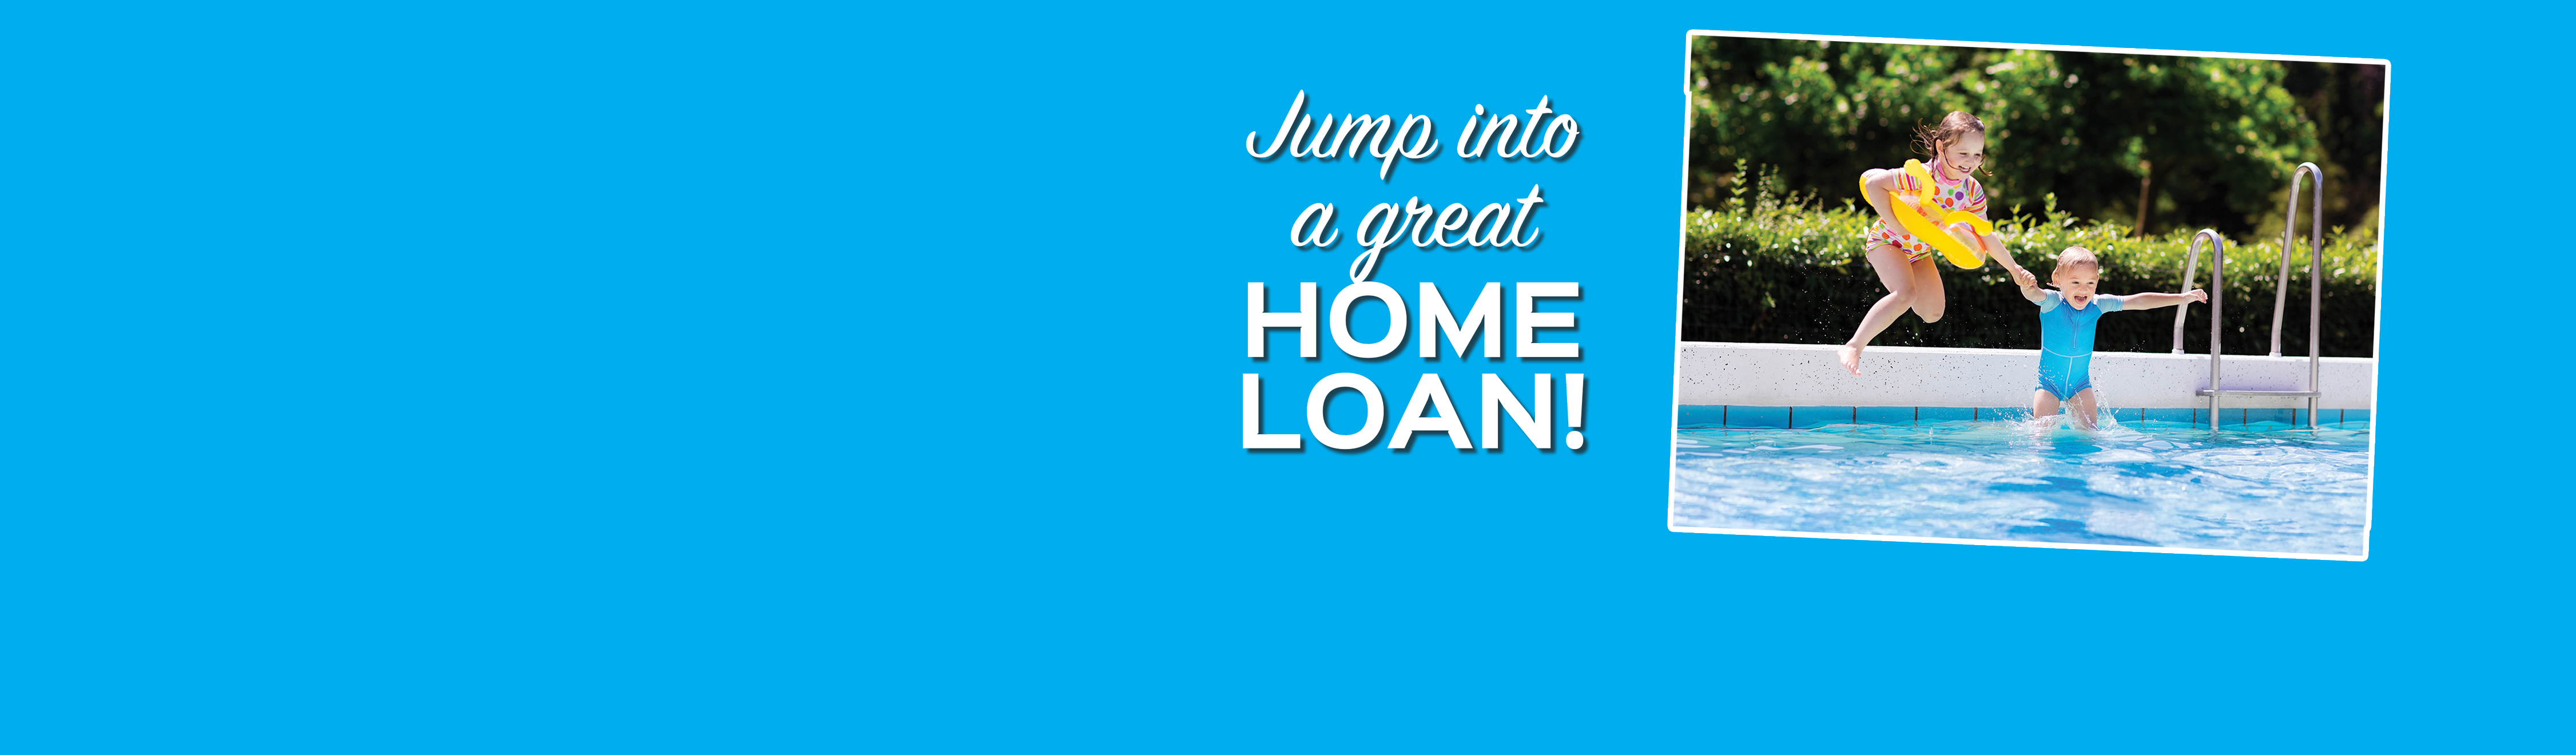 Jump into a great home loan